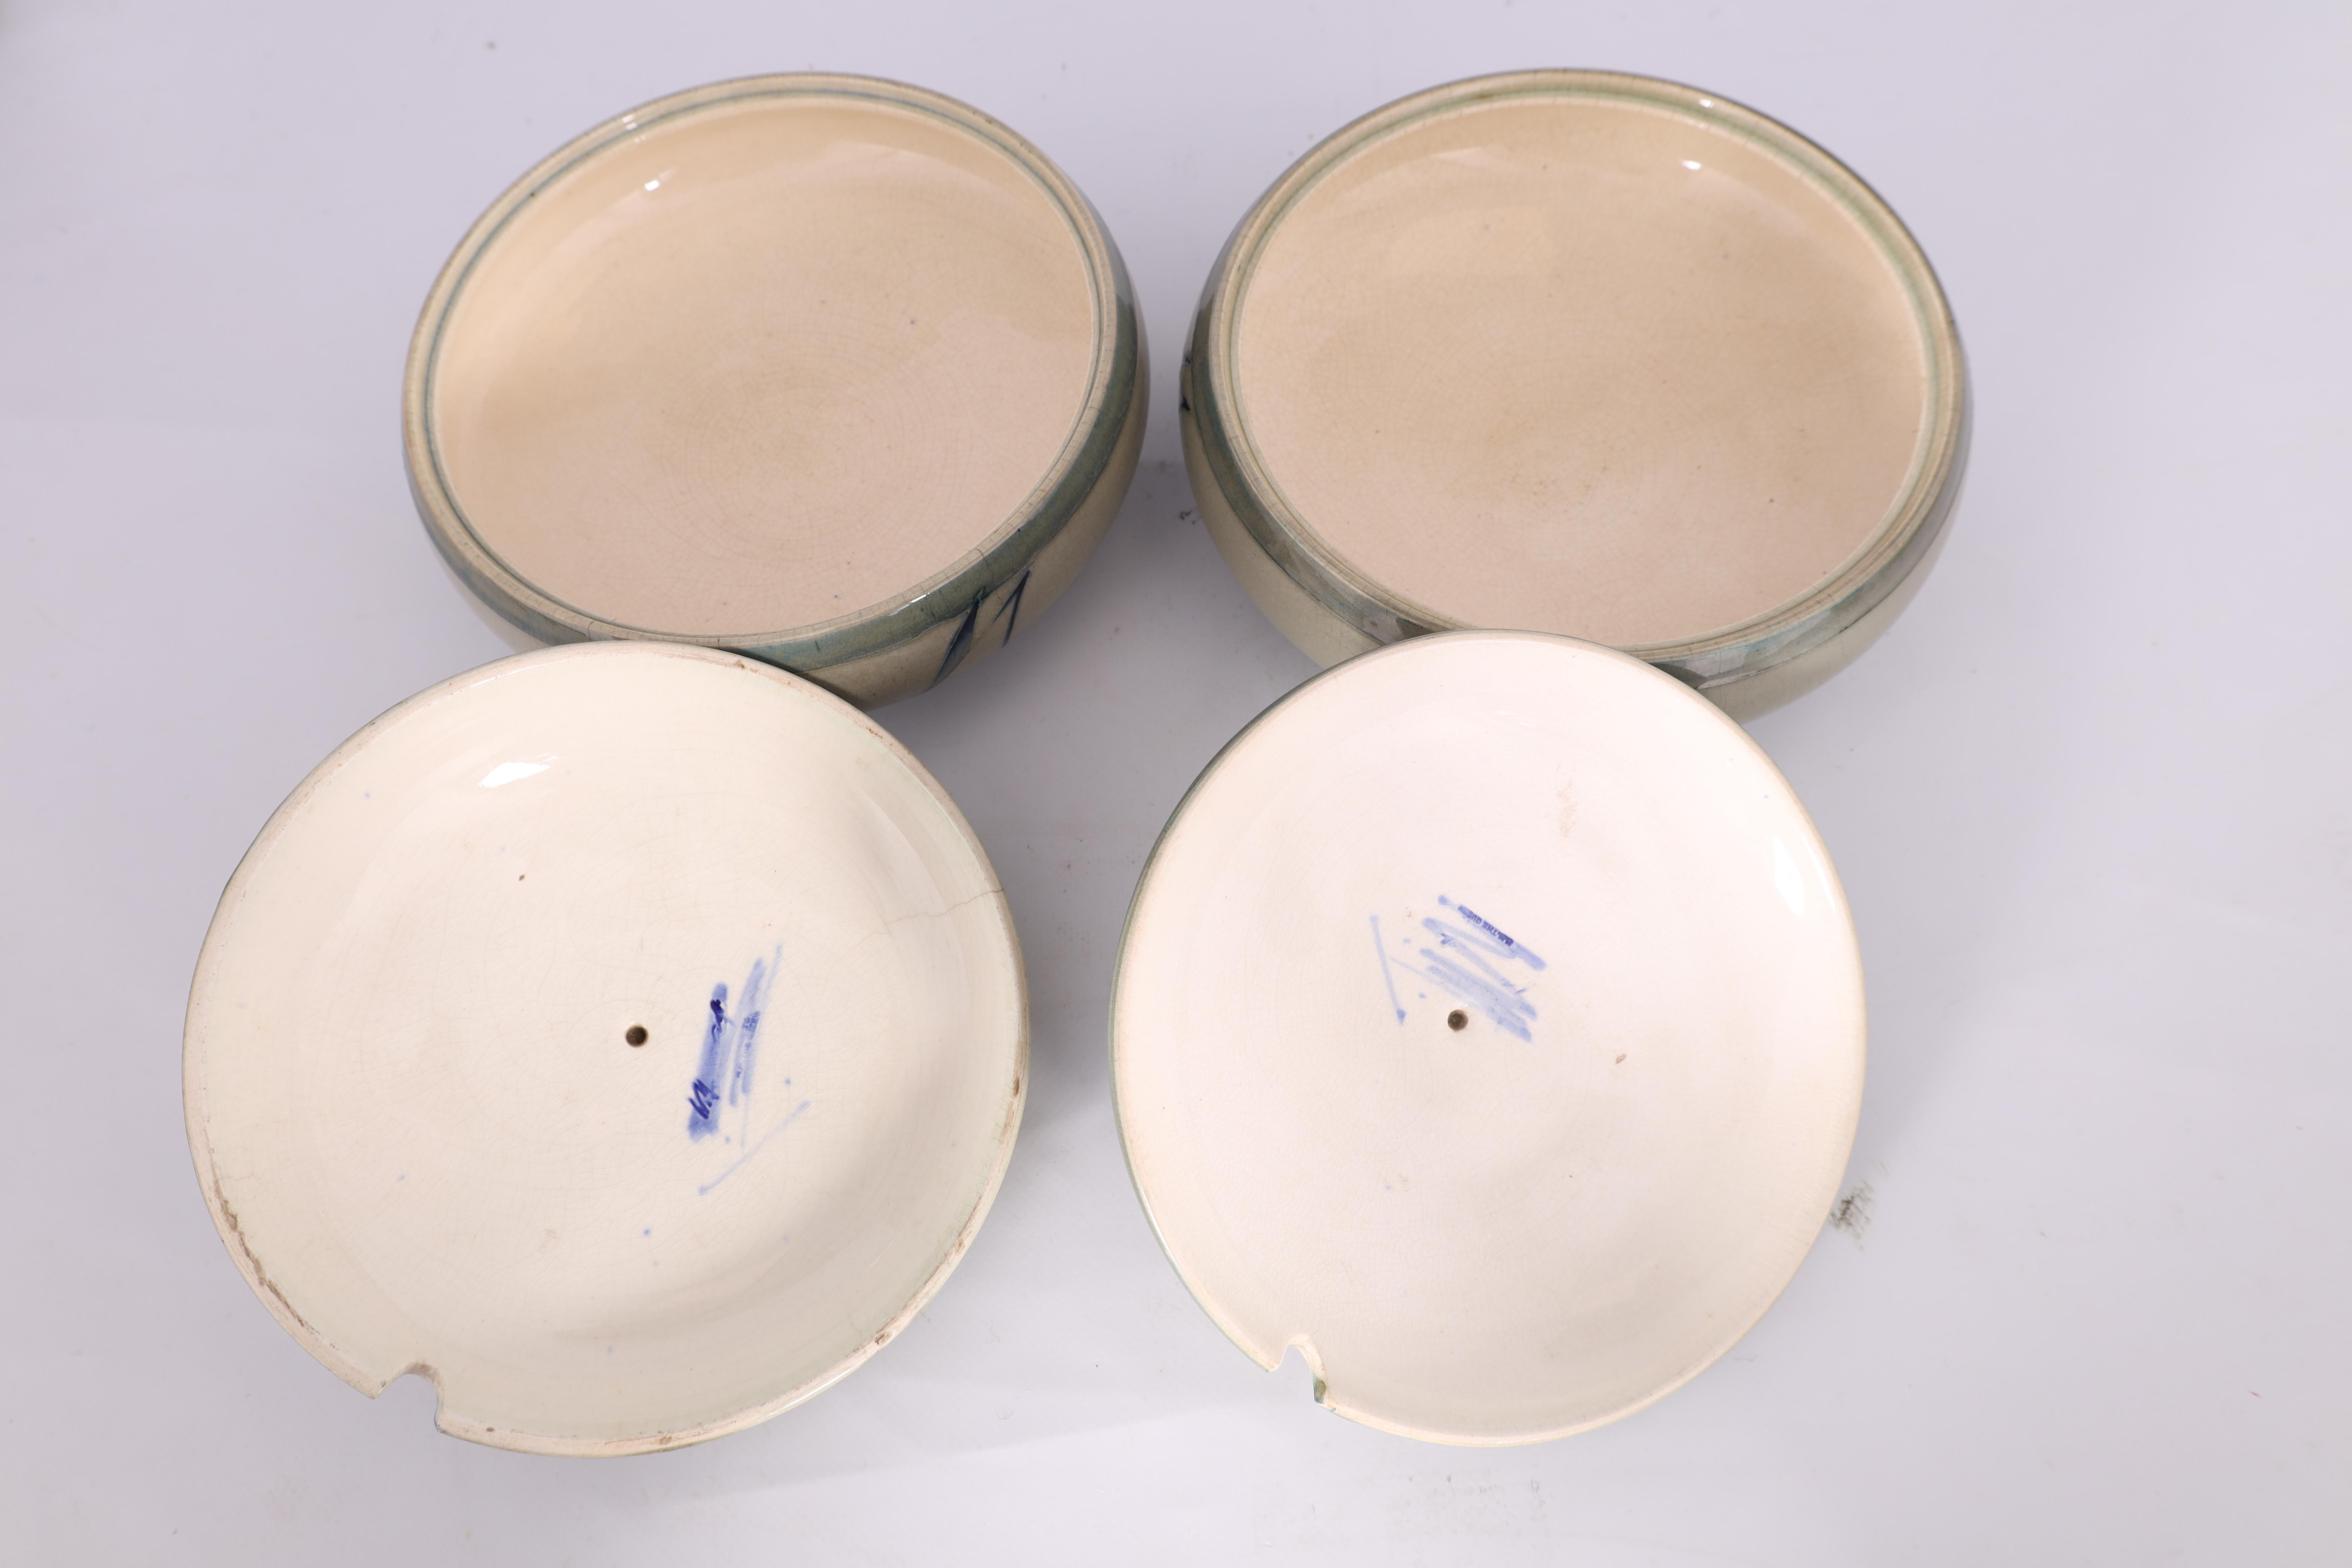 A PAIR OF MOORCROFT LIDDED TABLE TUREENS decorated in the Yacht pattern on a celadon ground, 19. - Image 6 of 12